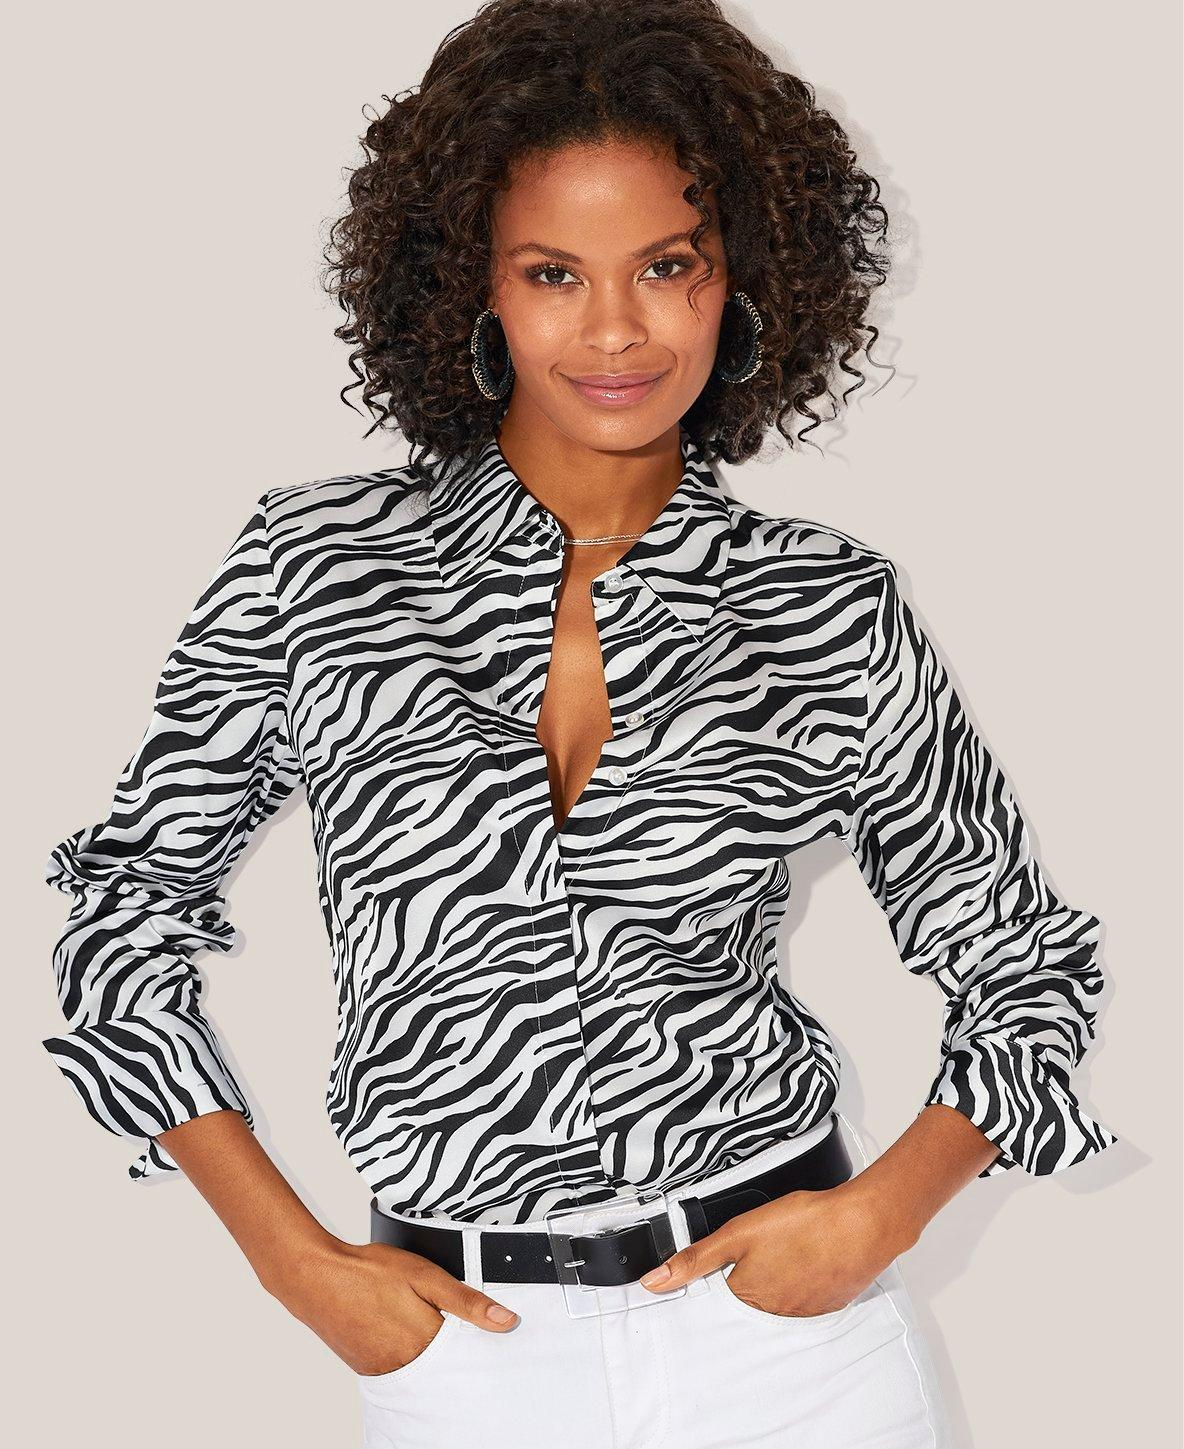 model wearing a black and white zebra striped button-down top, black belt, and white jeans.